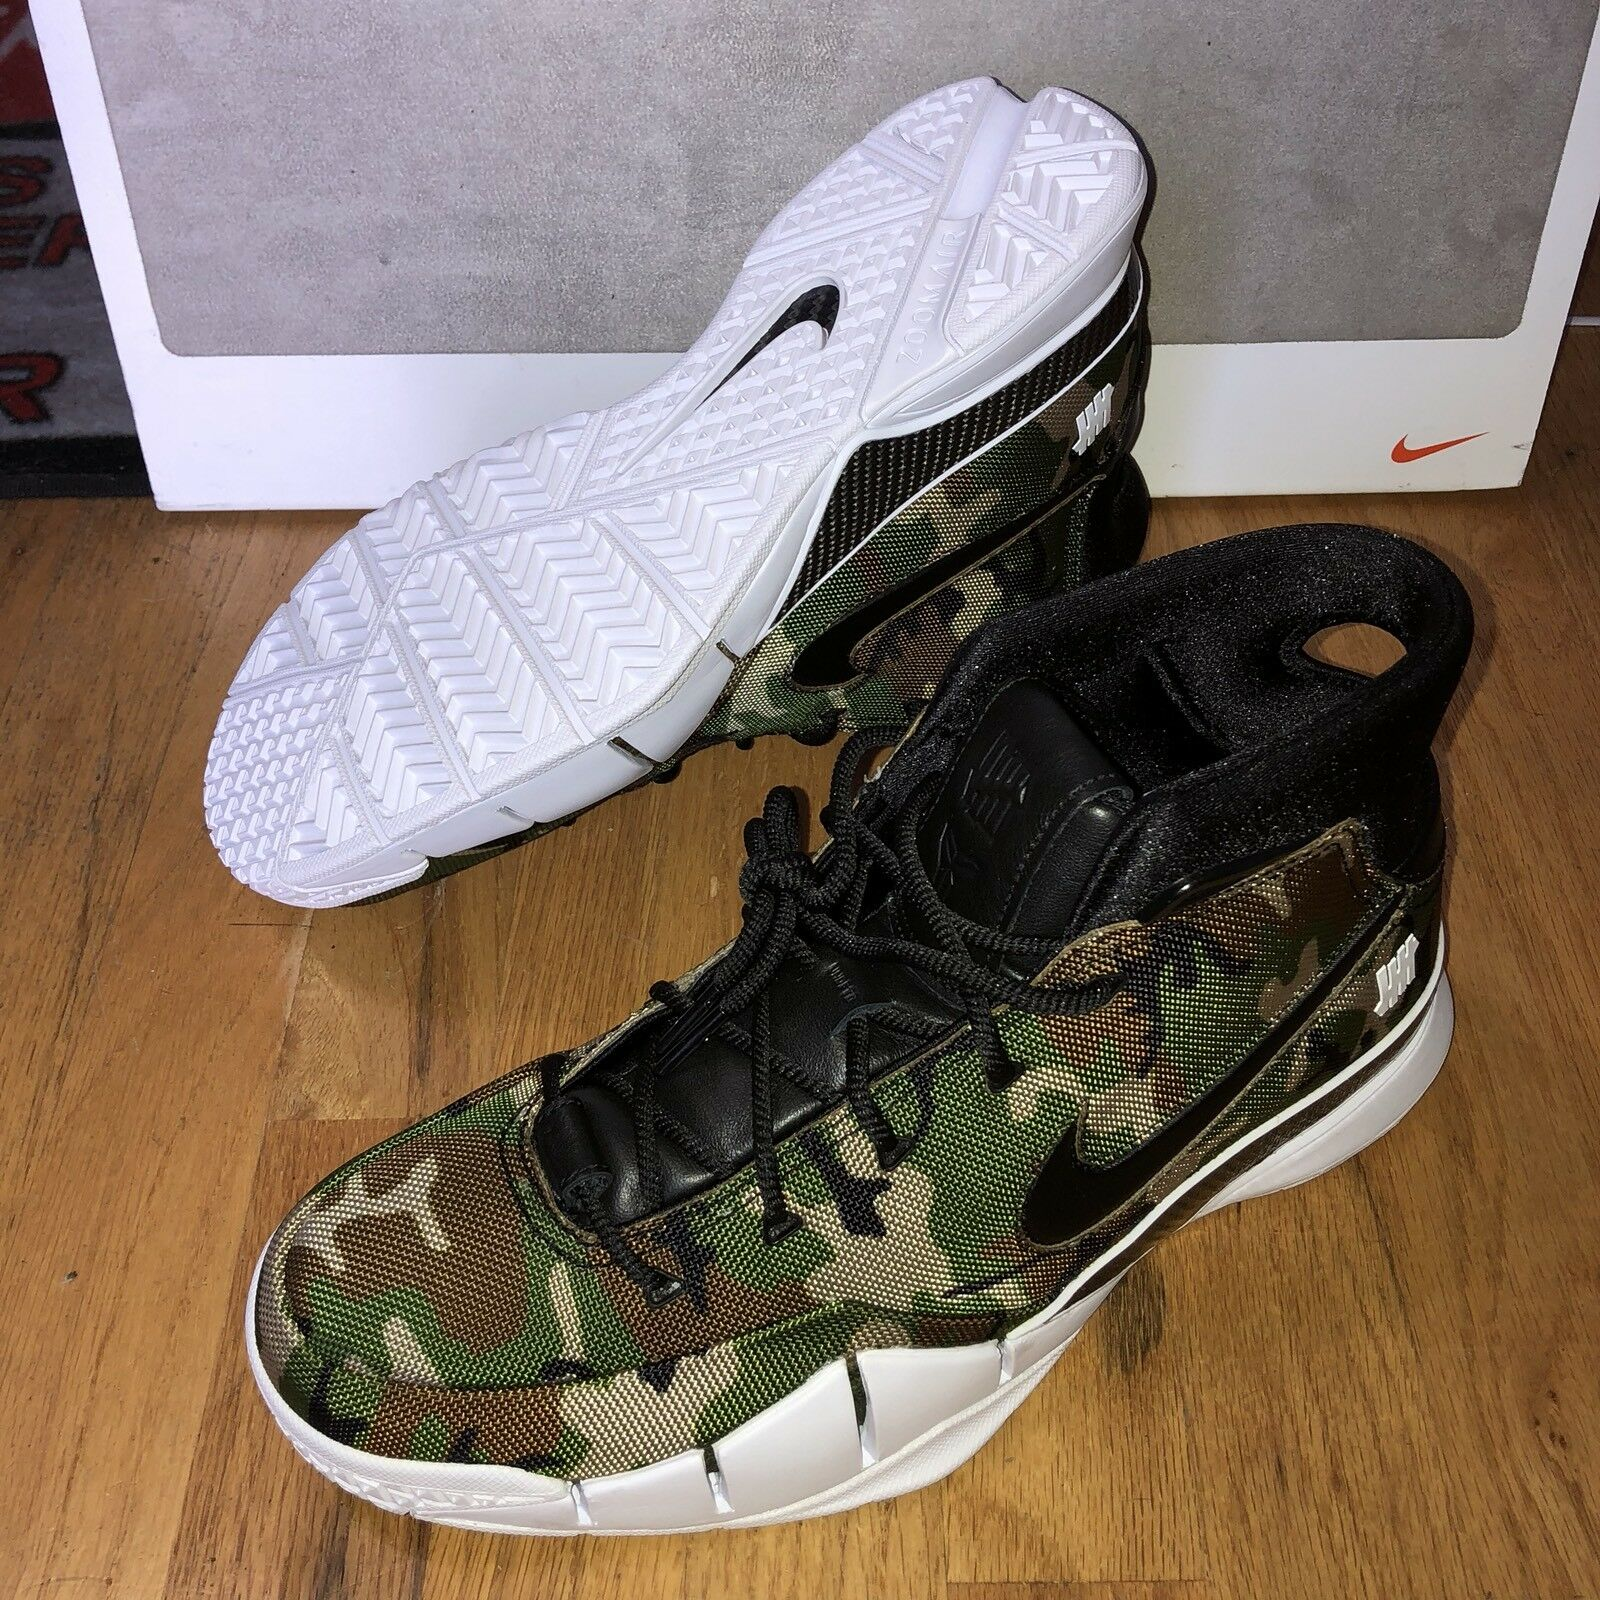 NIKE KOBE 1 PROTRO UNDEFEATED Green Camo AQ3635-300 Men's Size 9 New Deadstock